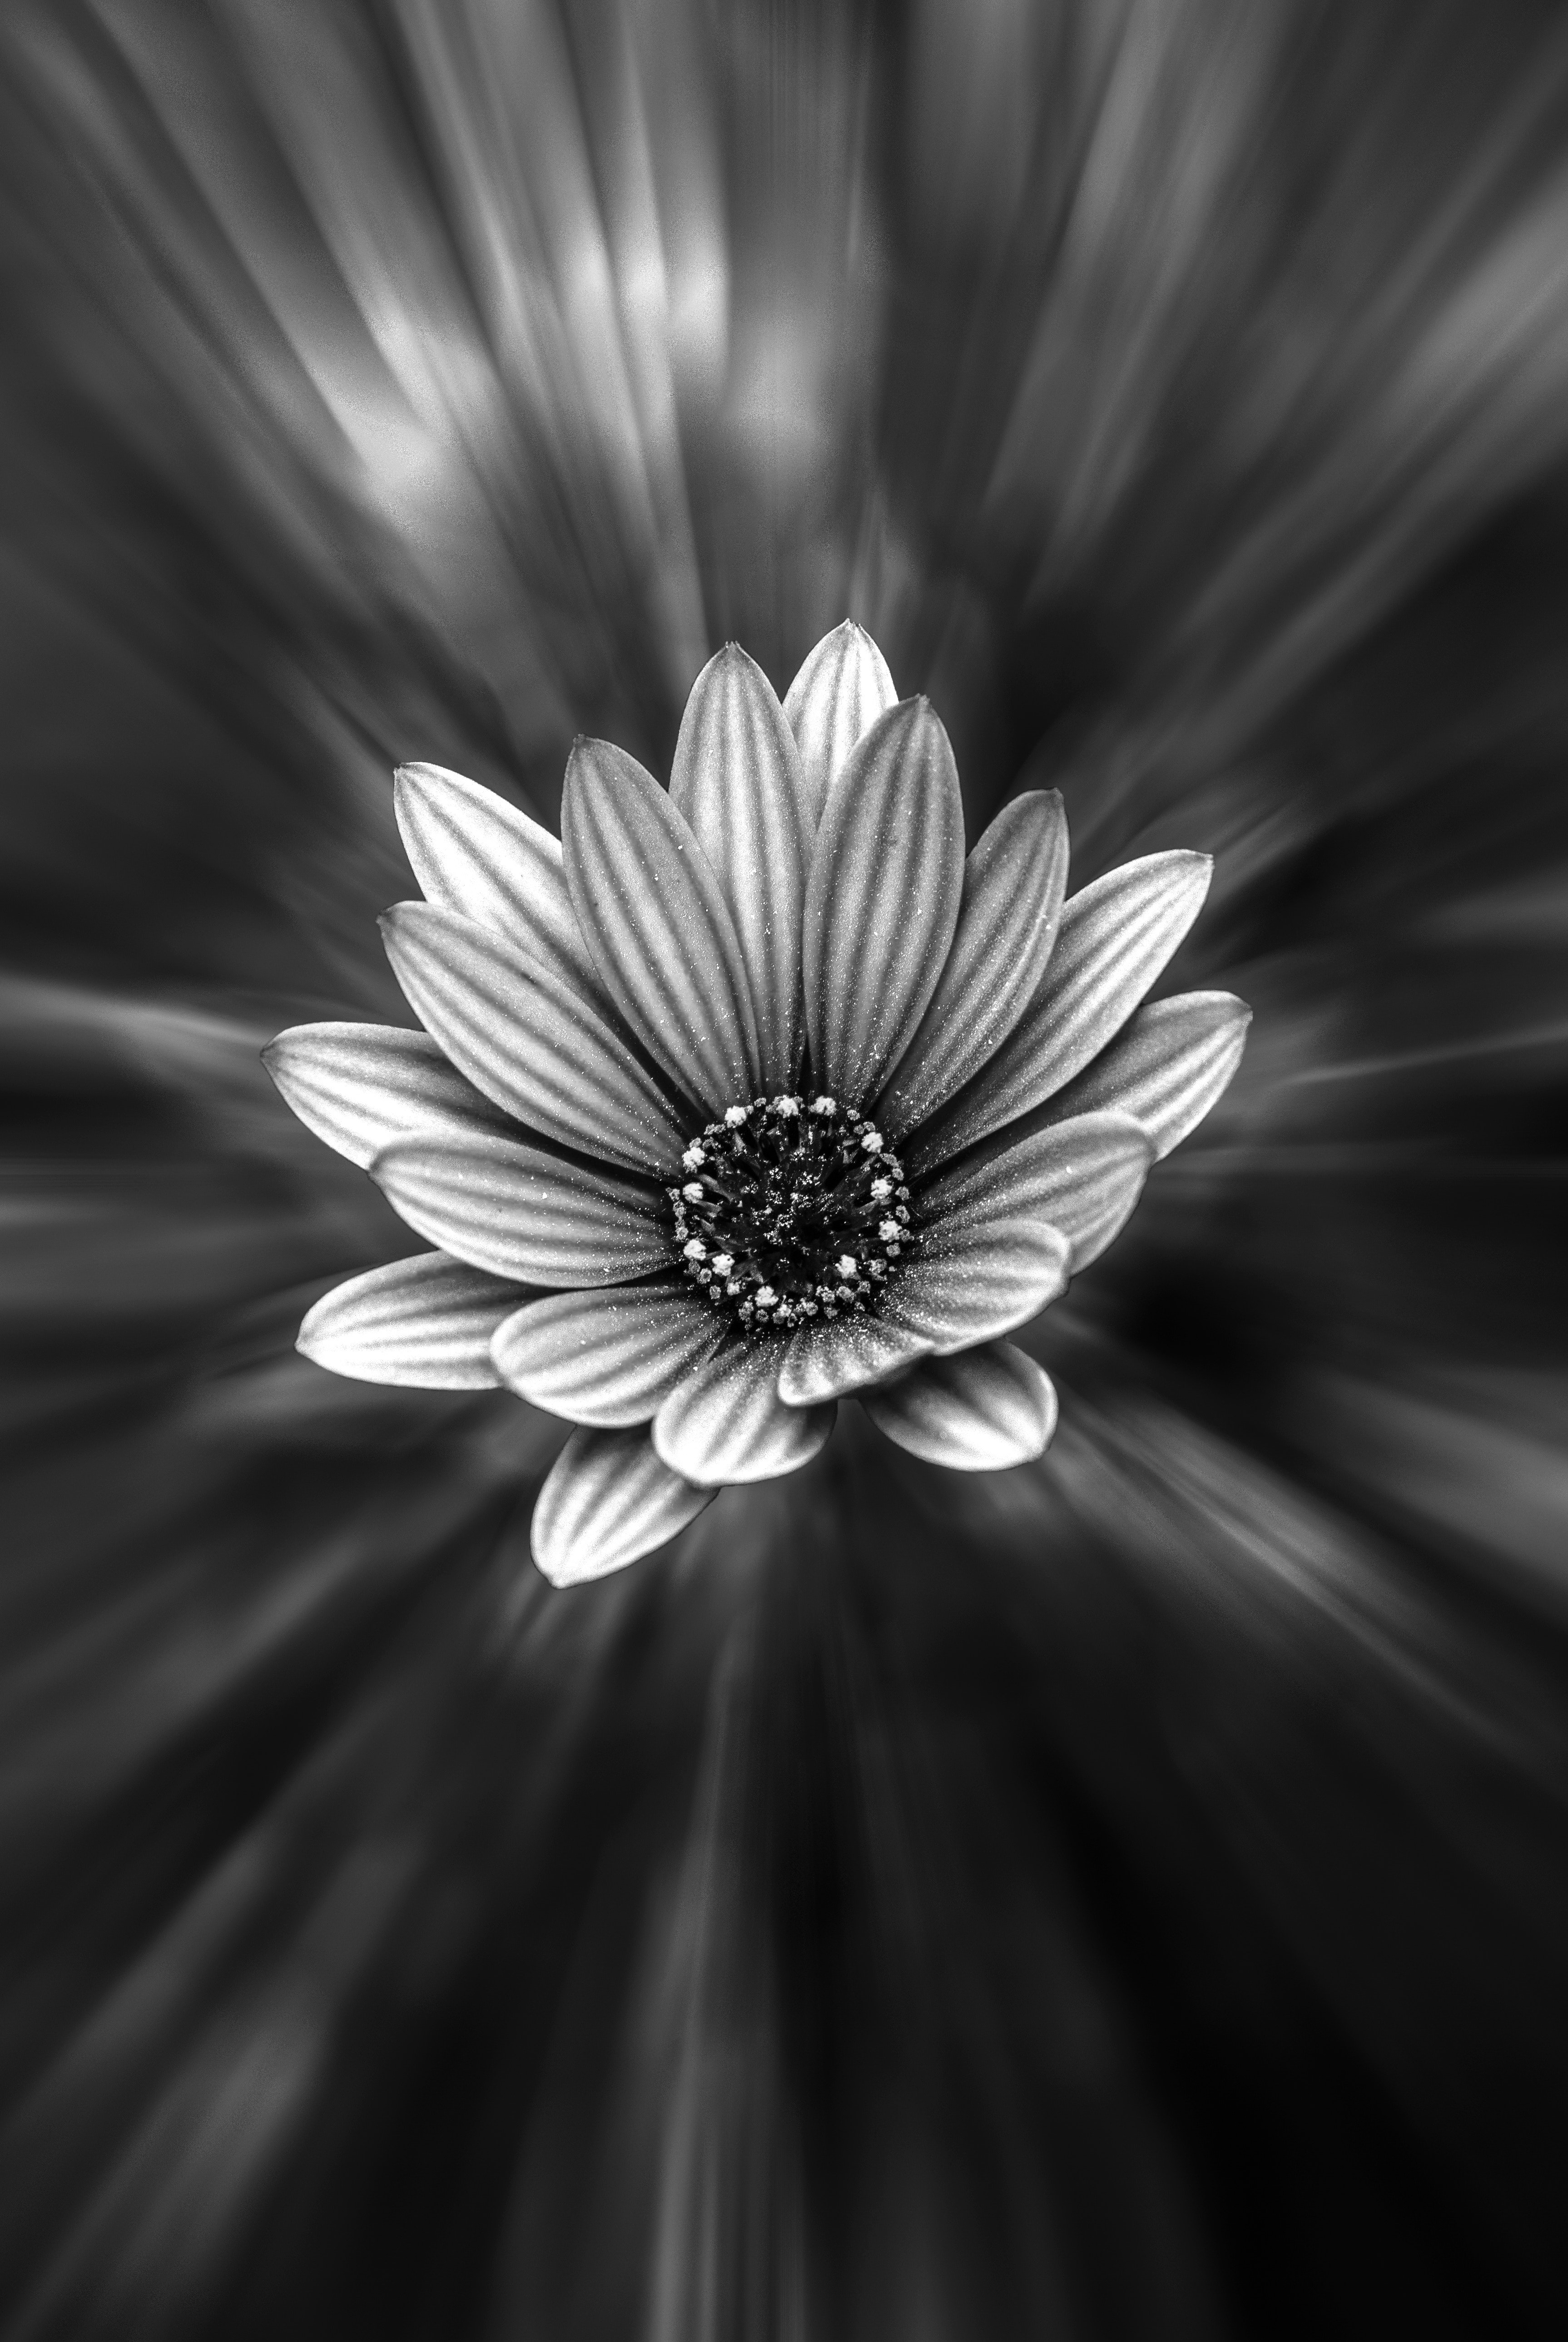 Free stock photo of black and white blossom flower free download mightylinksfo